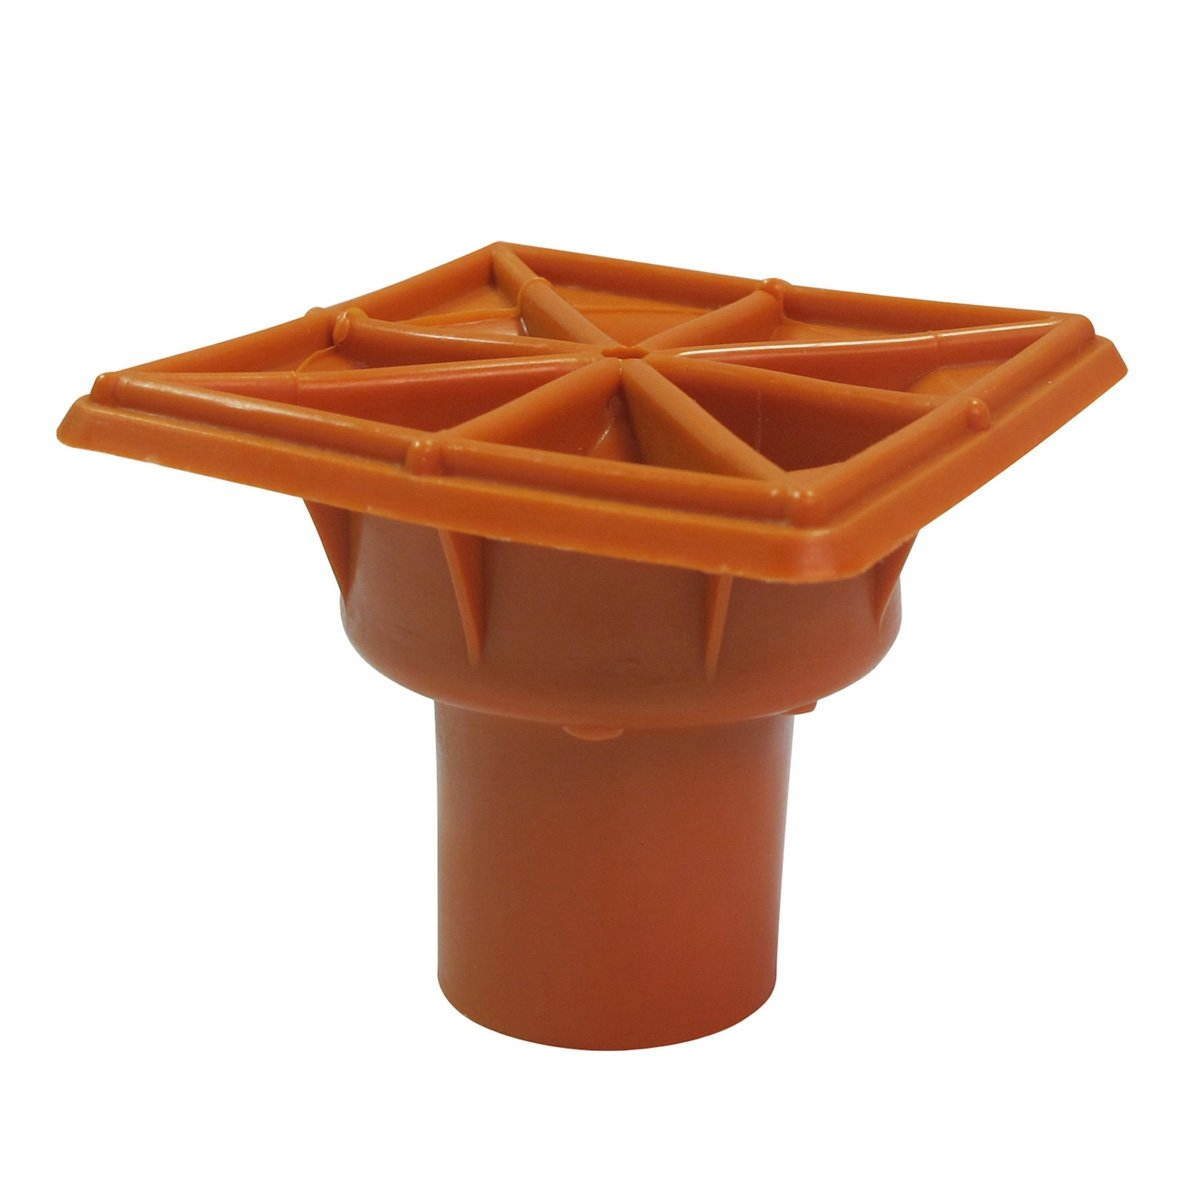 Rebar Cap, Orange,''DSC10, 25 Cal, Fits Rebar 3 - 7, OSHA, 16910 by ERB